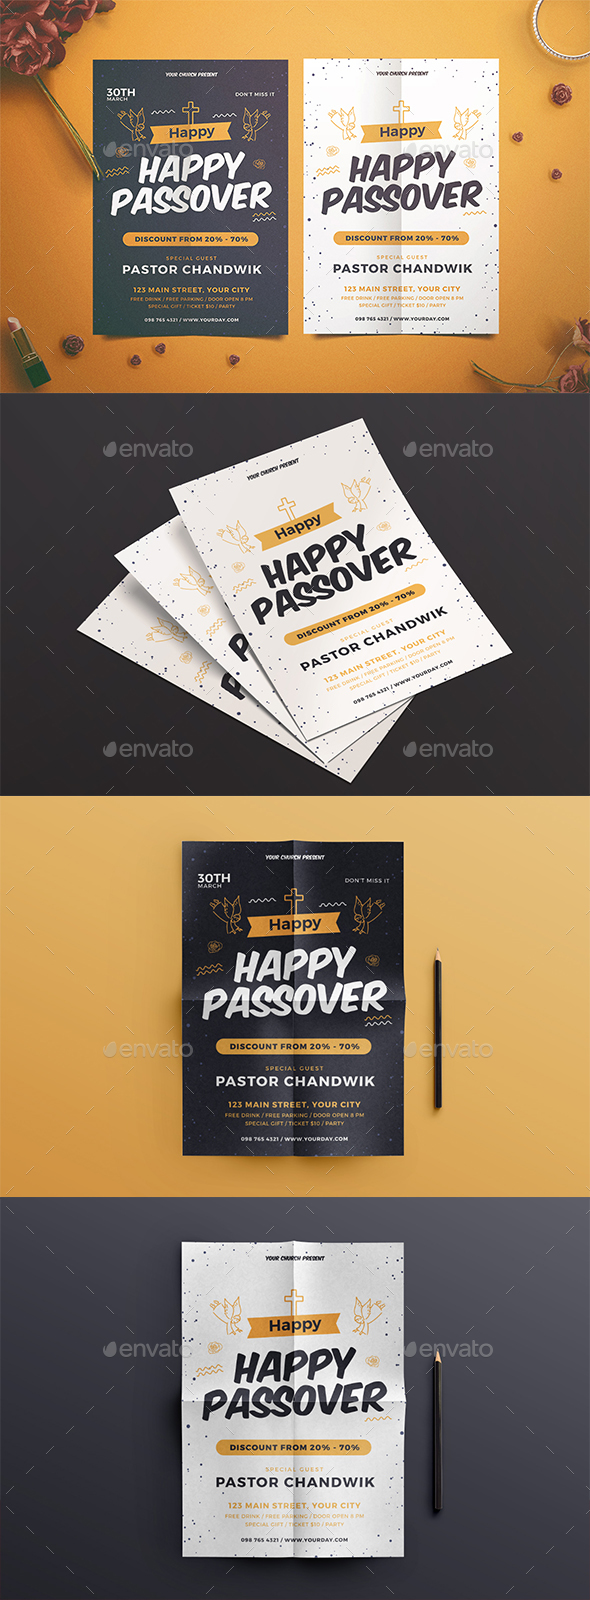 Happy Passover Flyer - Events Flyers